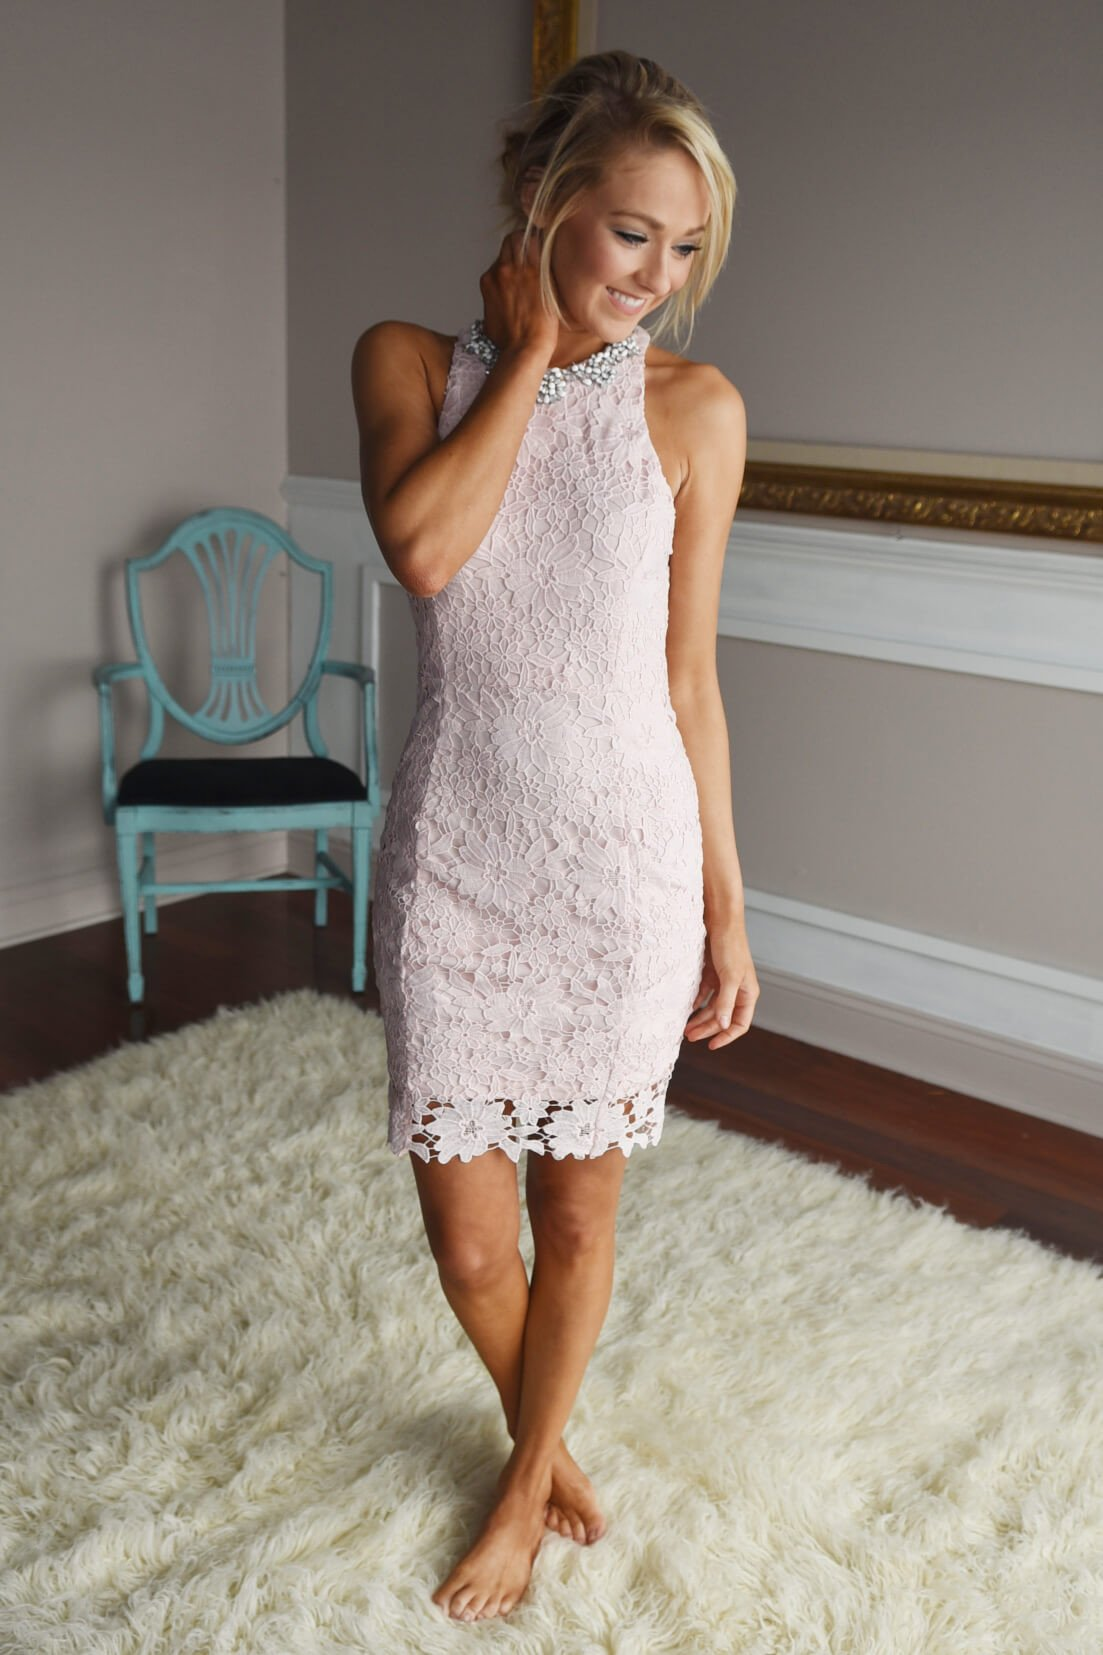 Irresistible in Lace ~ Light Pink